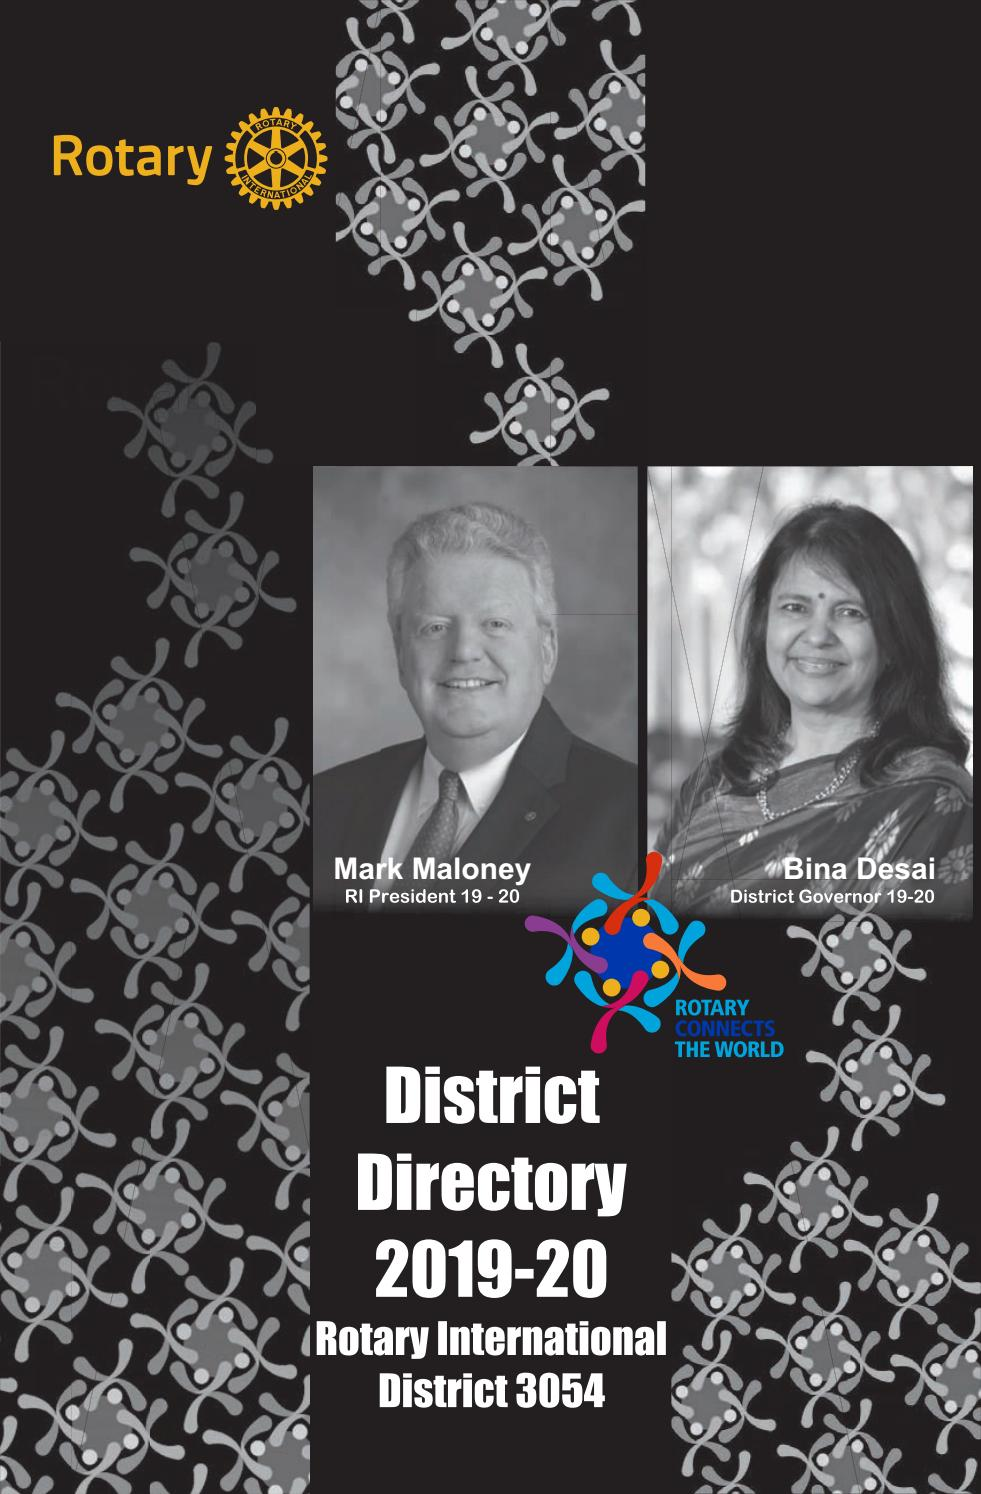 Rotary International District 3054 - District Directory 2019